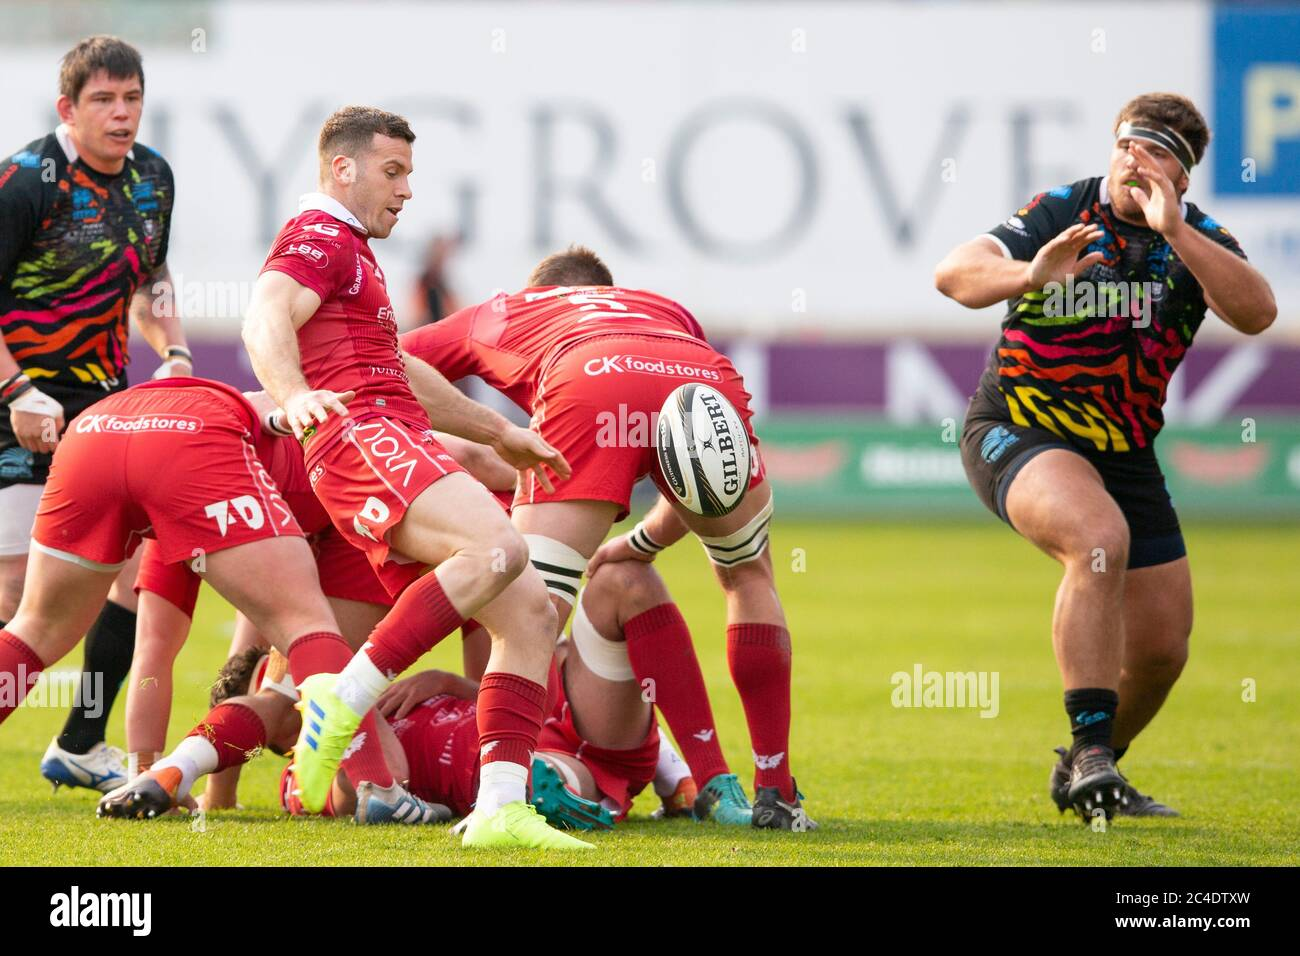 Parc y Scarlets, Llanelli, Wales, UK. Saturday 13 April 2019.Scarlets scrum half Gareth Davies kicks in the Guinness Pro14 match between Scarlets and Stock Photo